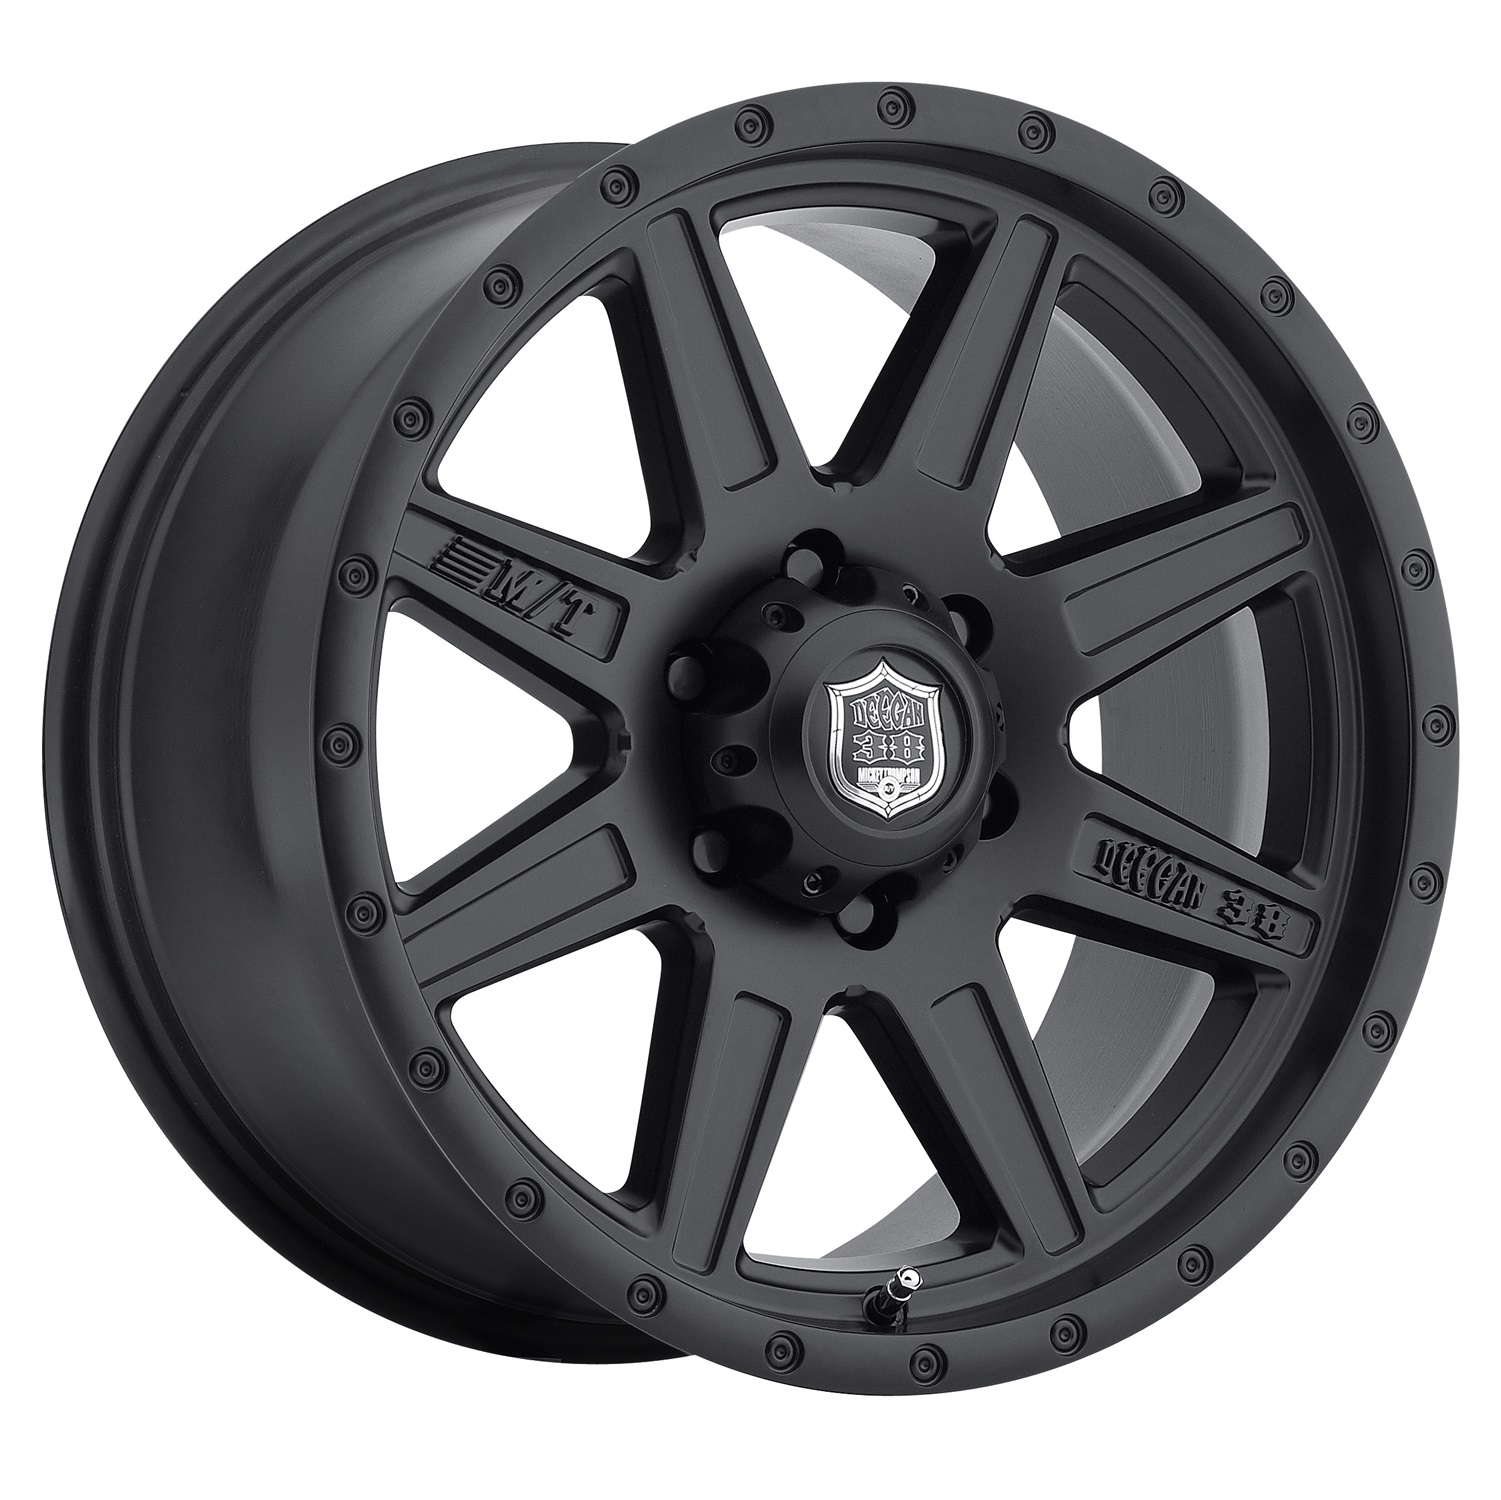 Mickey Thompson 90000024776 Mickey Thompson DEEGAN 38 PRO 2 Black